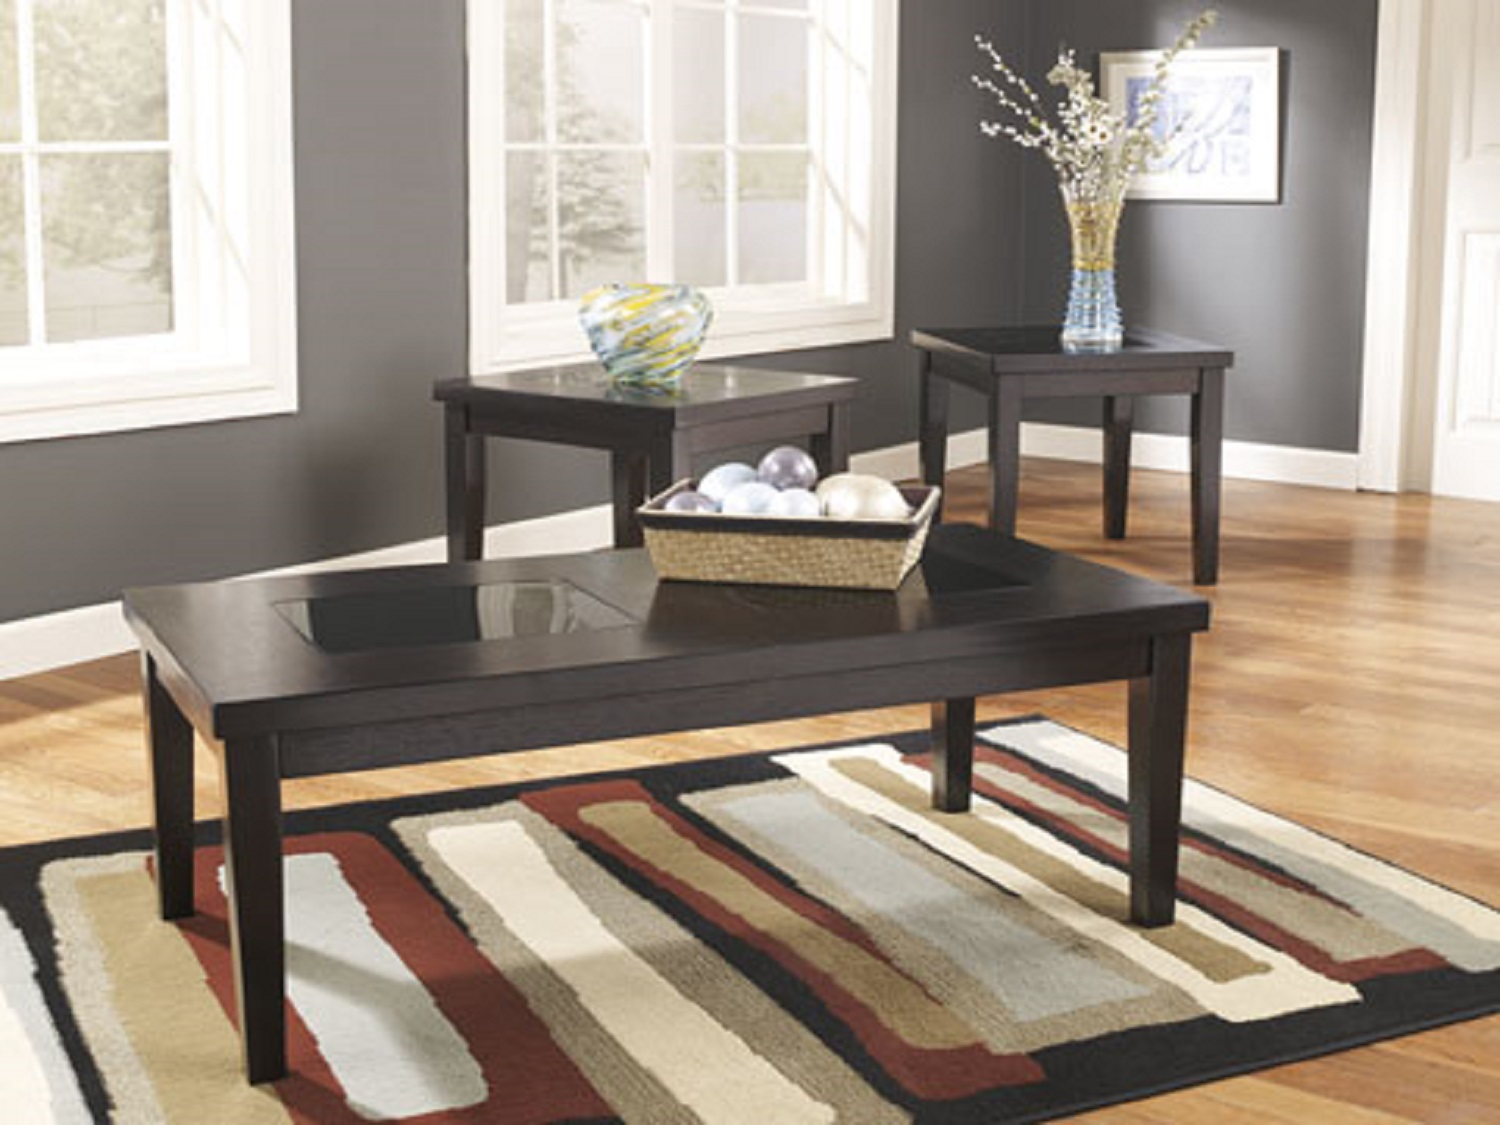 Denja 3PC Coffee Table Set, T281, Coffee Table Set (3PC) by Midha Furniture to Brampton, Mississauga, Etobicoke, Toronto, Scraborough, Caledon, Oakville, Markham, Ajax, Pickering, Oshawa, Richmondhill, Kitchener, Hamilton, Cambridge, Waterloo and GTA area